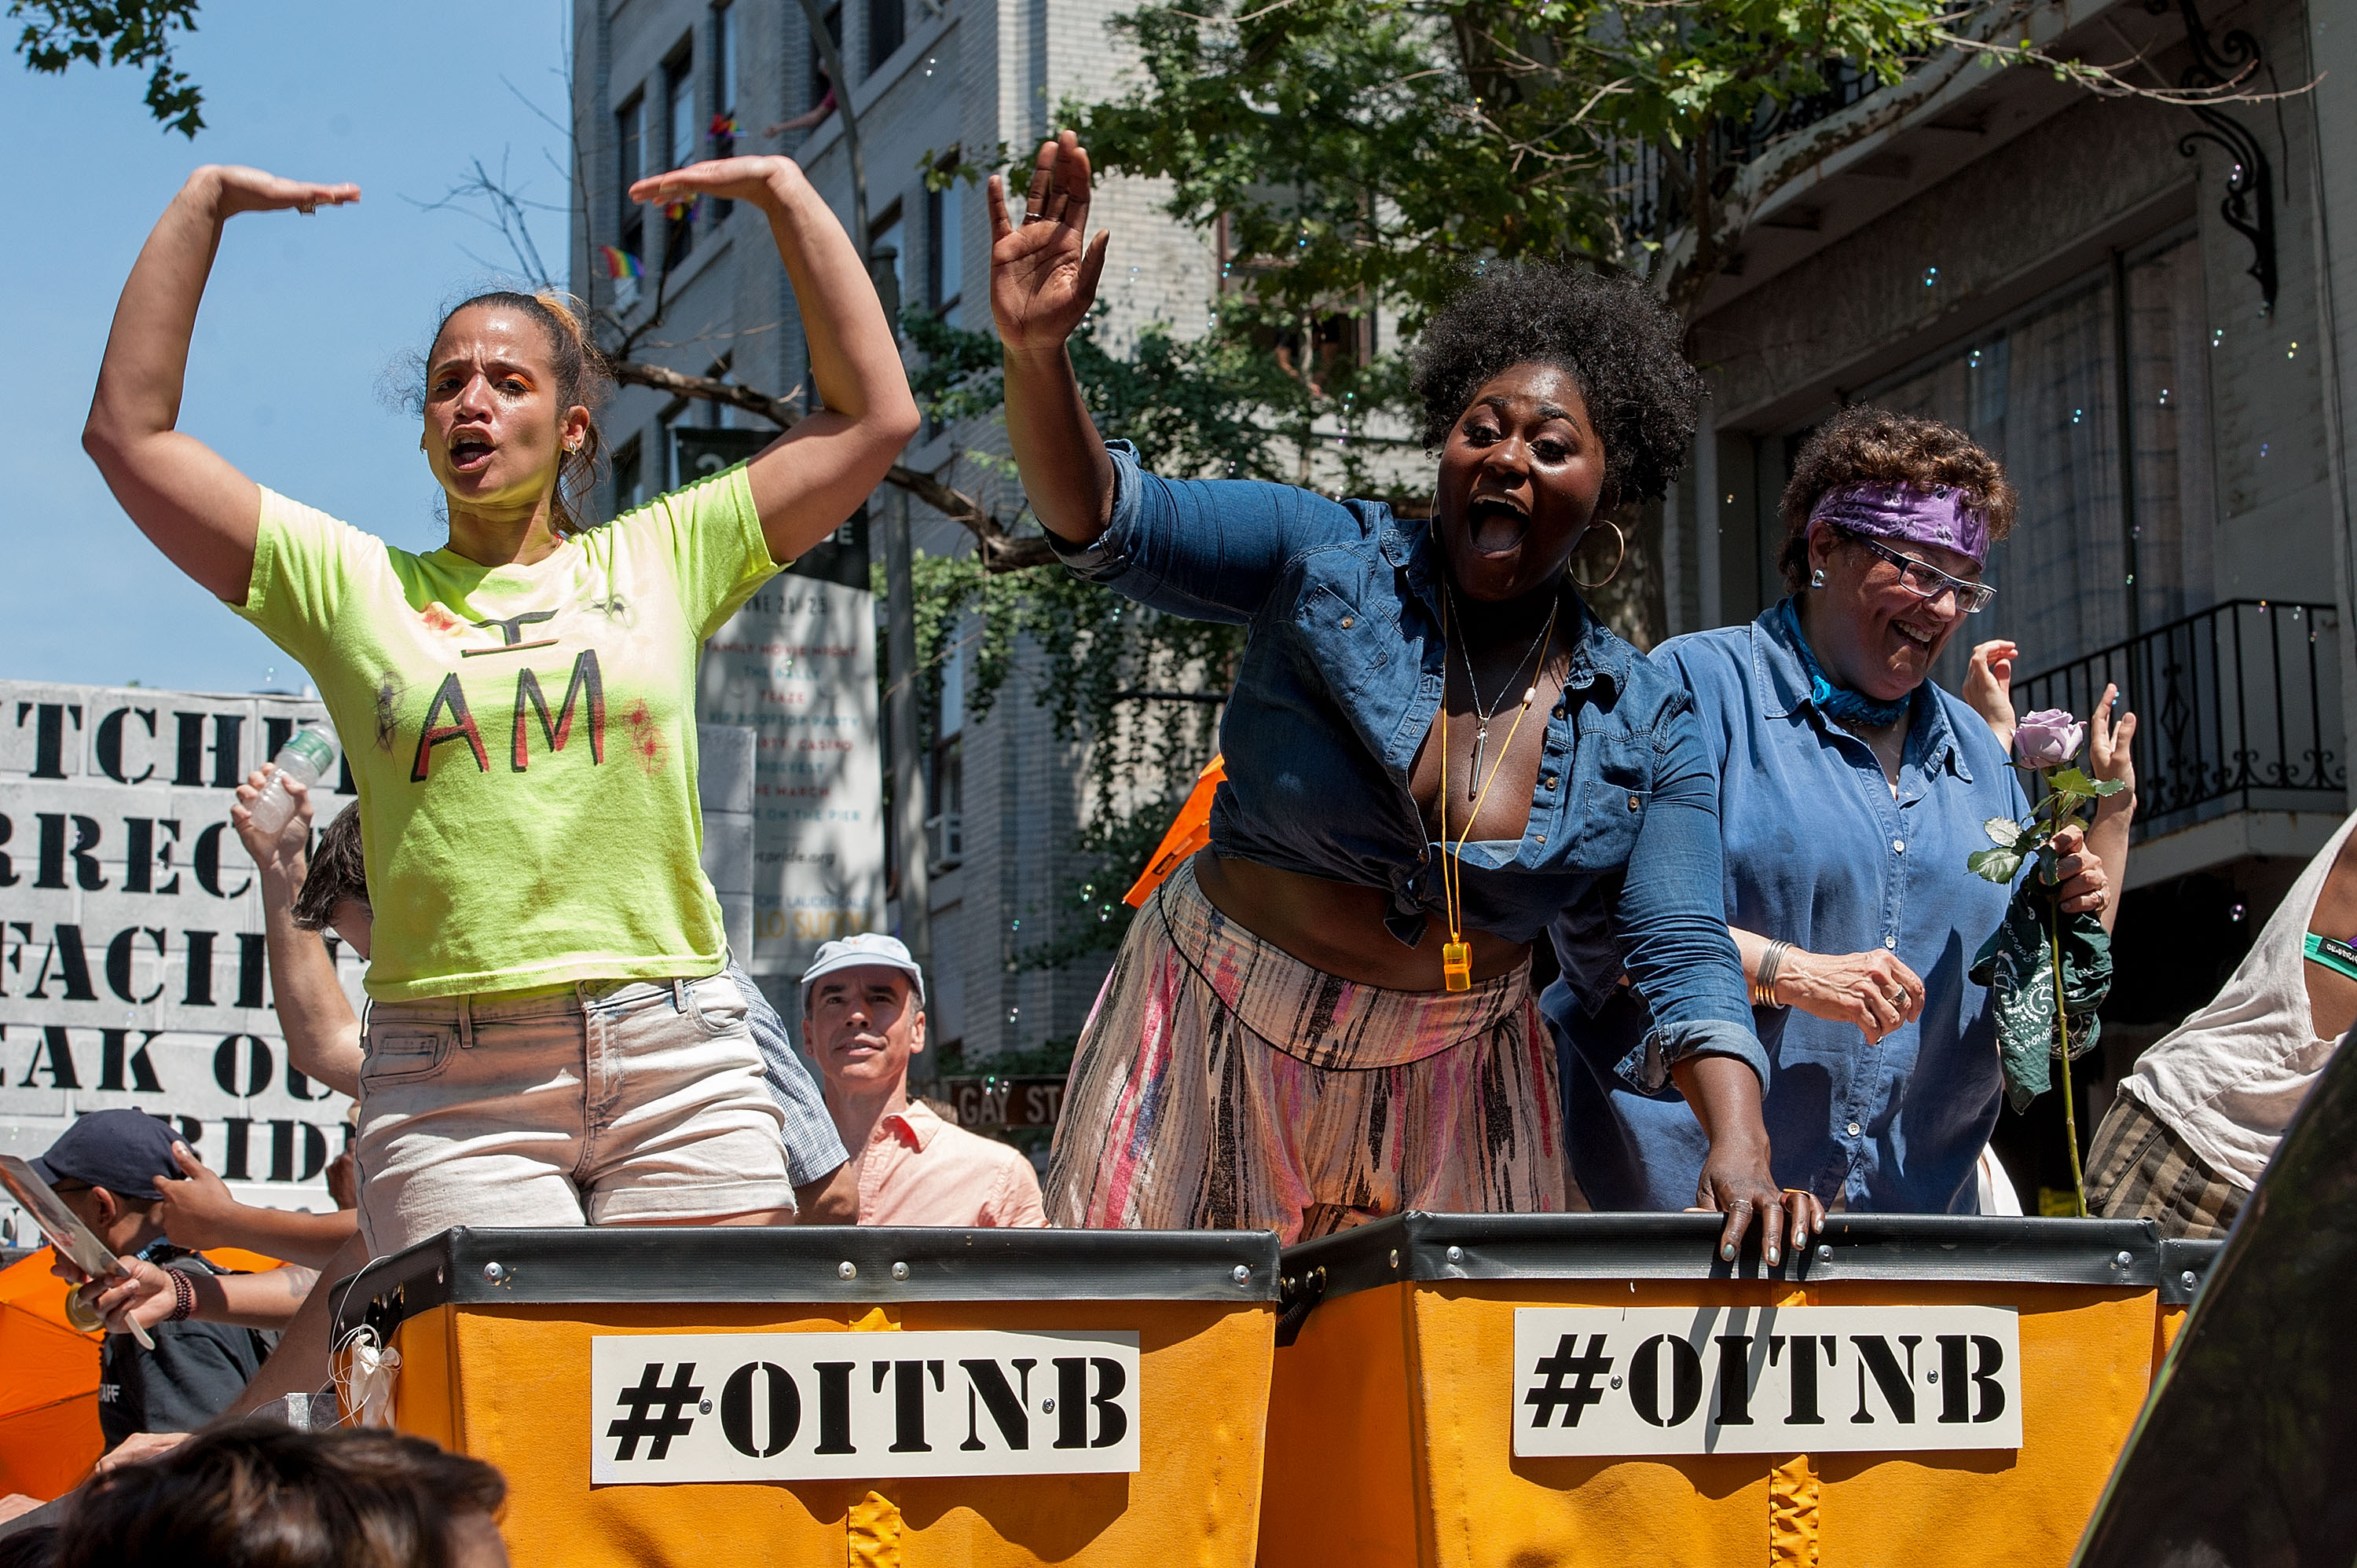 From left, Orange Is the New Black cast members Dascha Polanco, Danielle Brooks and Barbara Rosenblat attend the New York City pride march on June 29, 2014